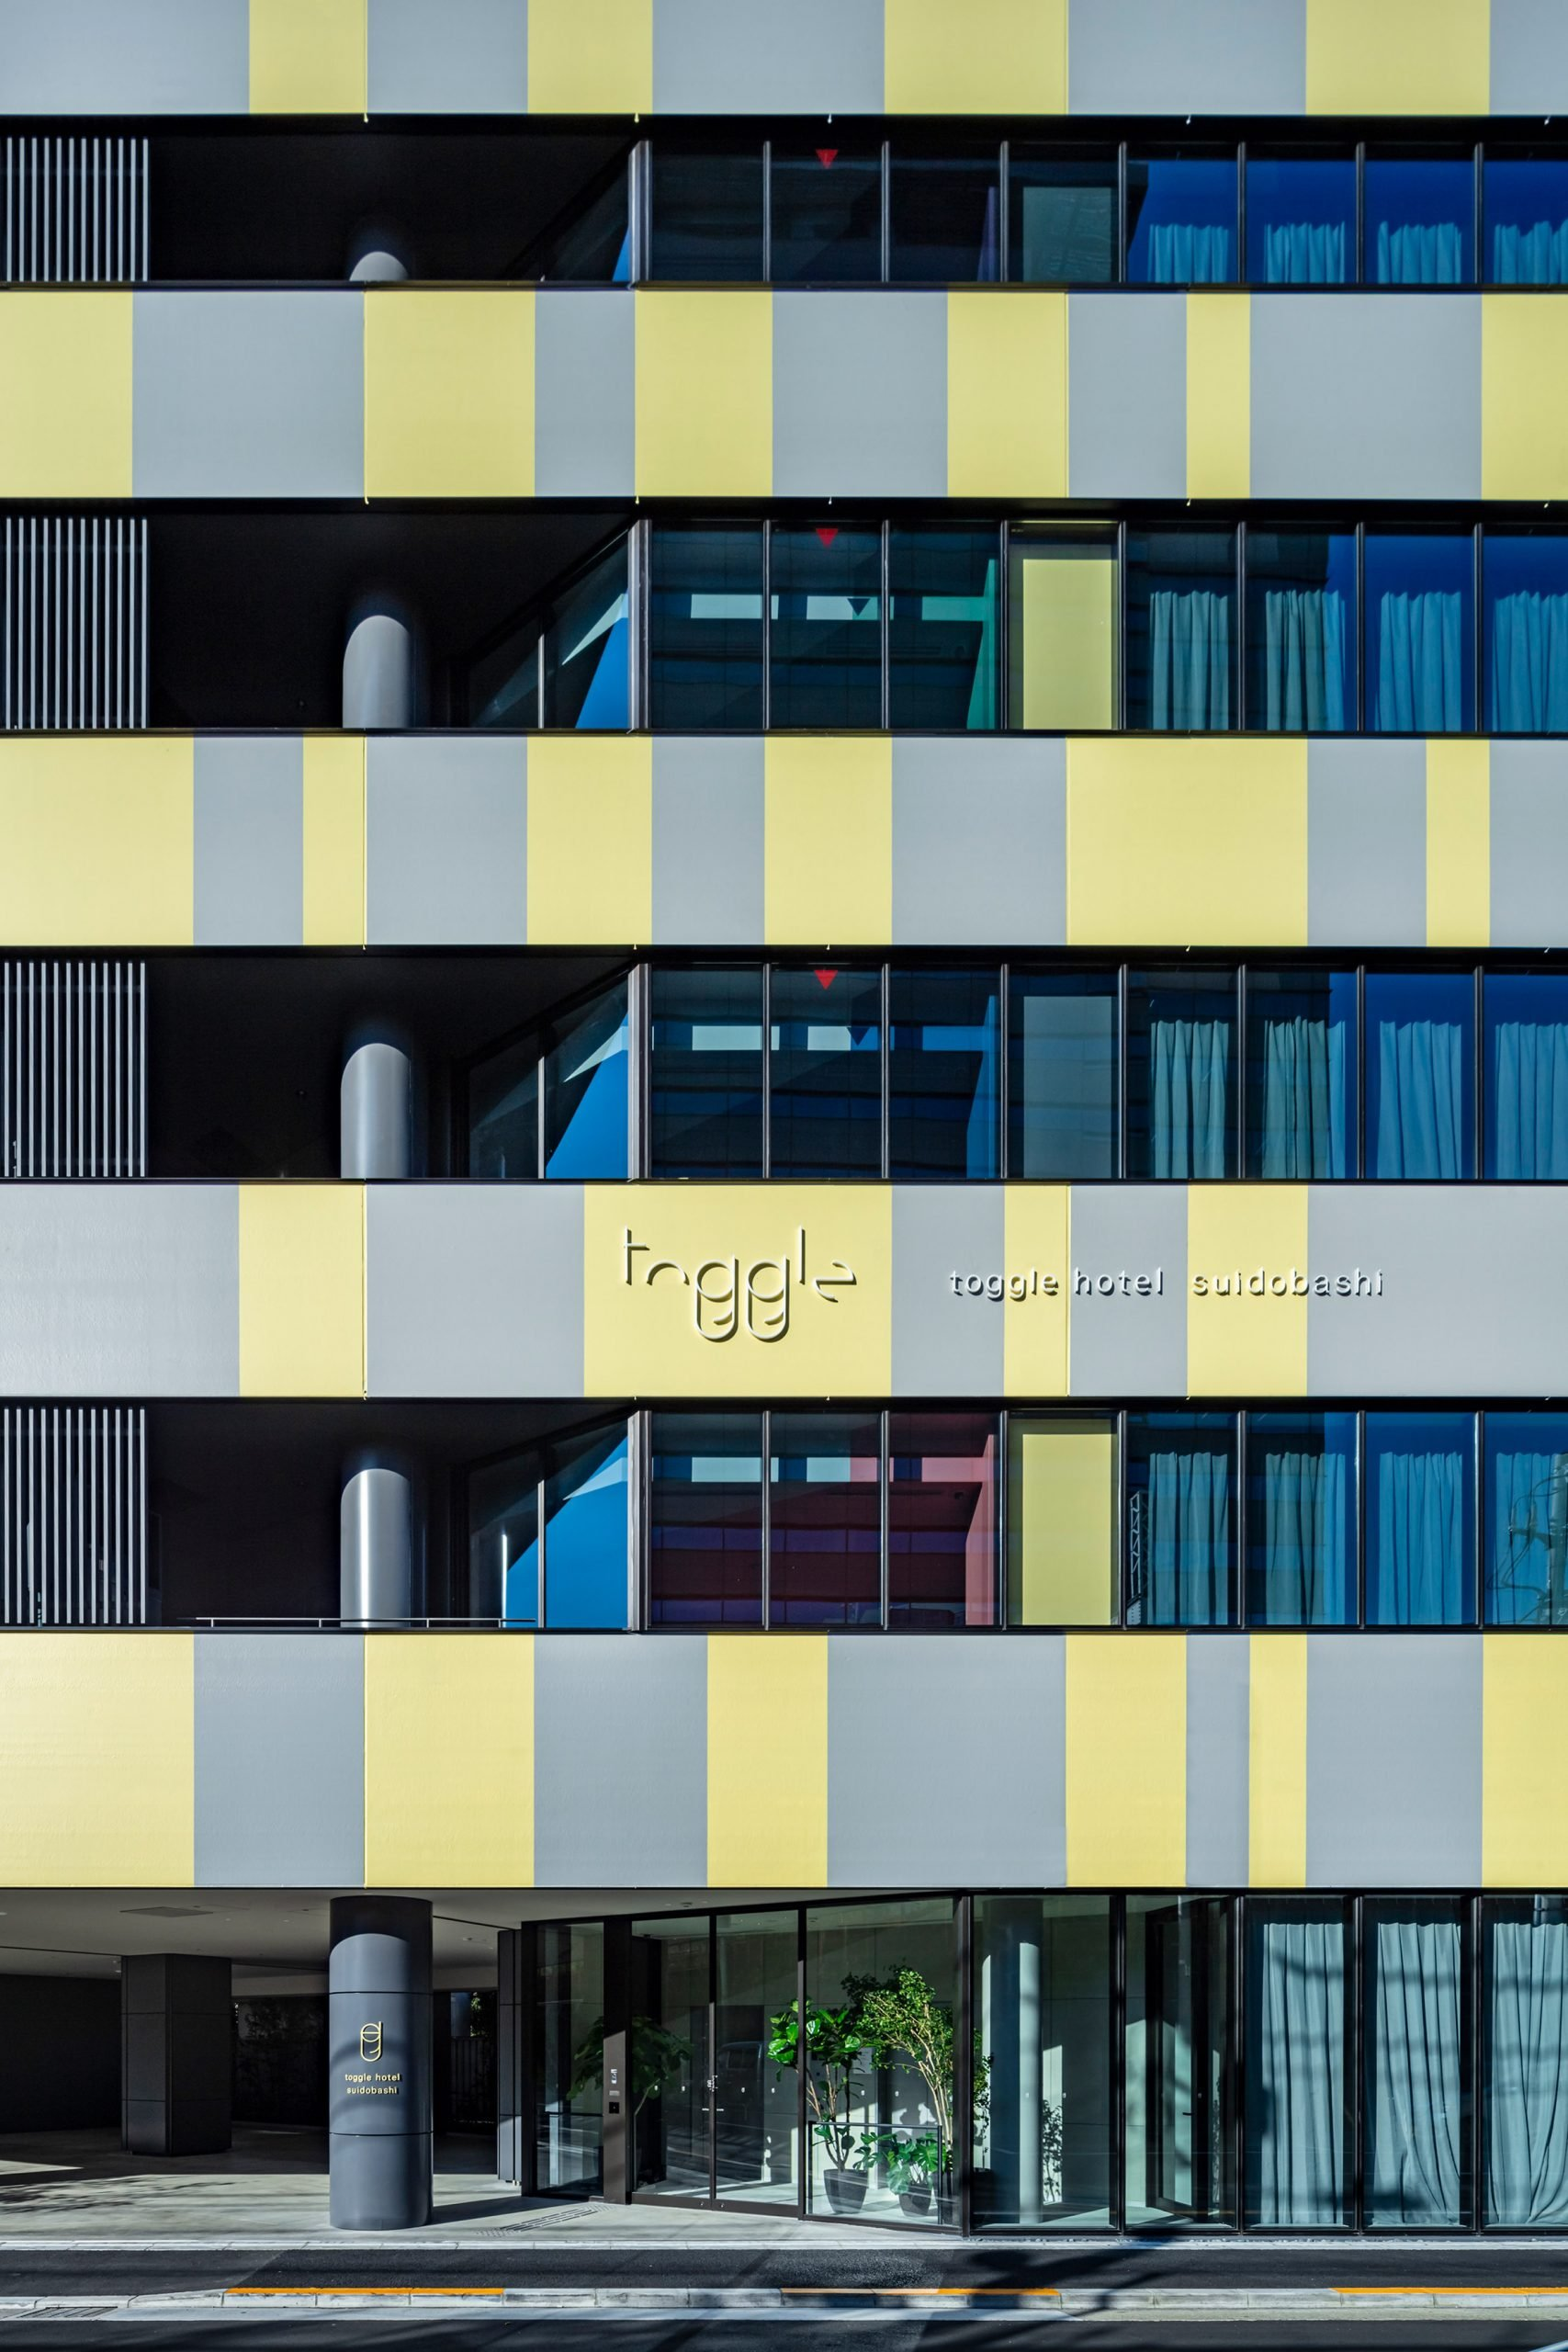 Toggle Hotel in Tokyo has grey and yellow facades